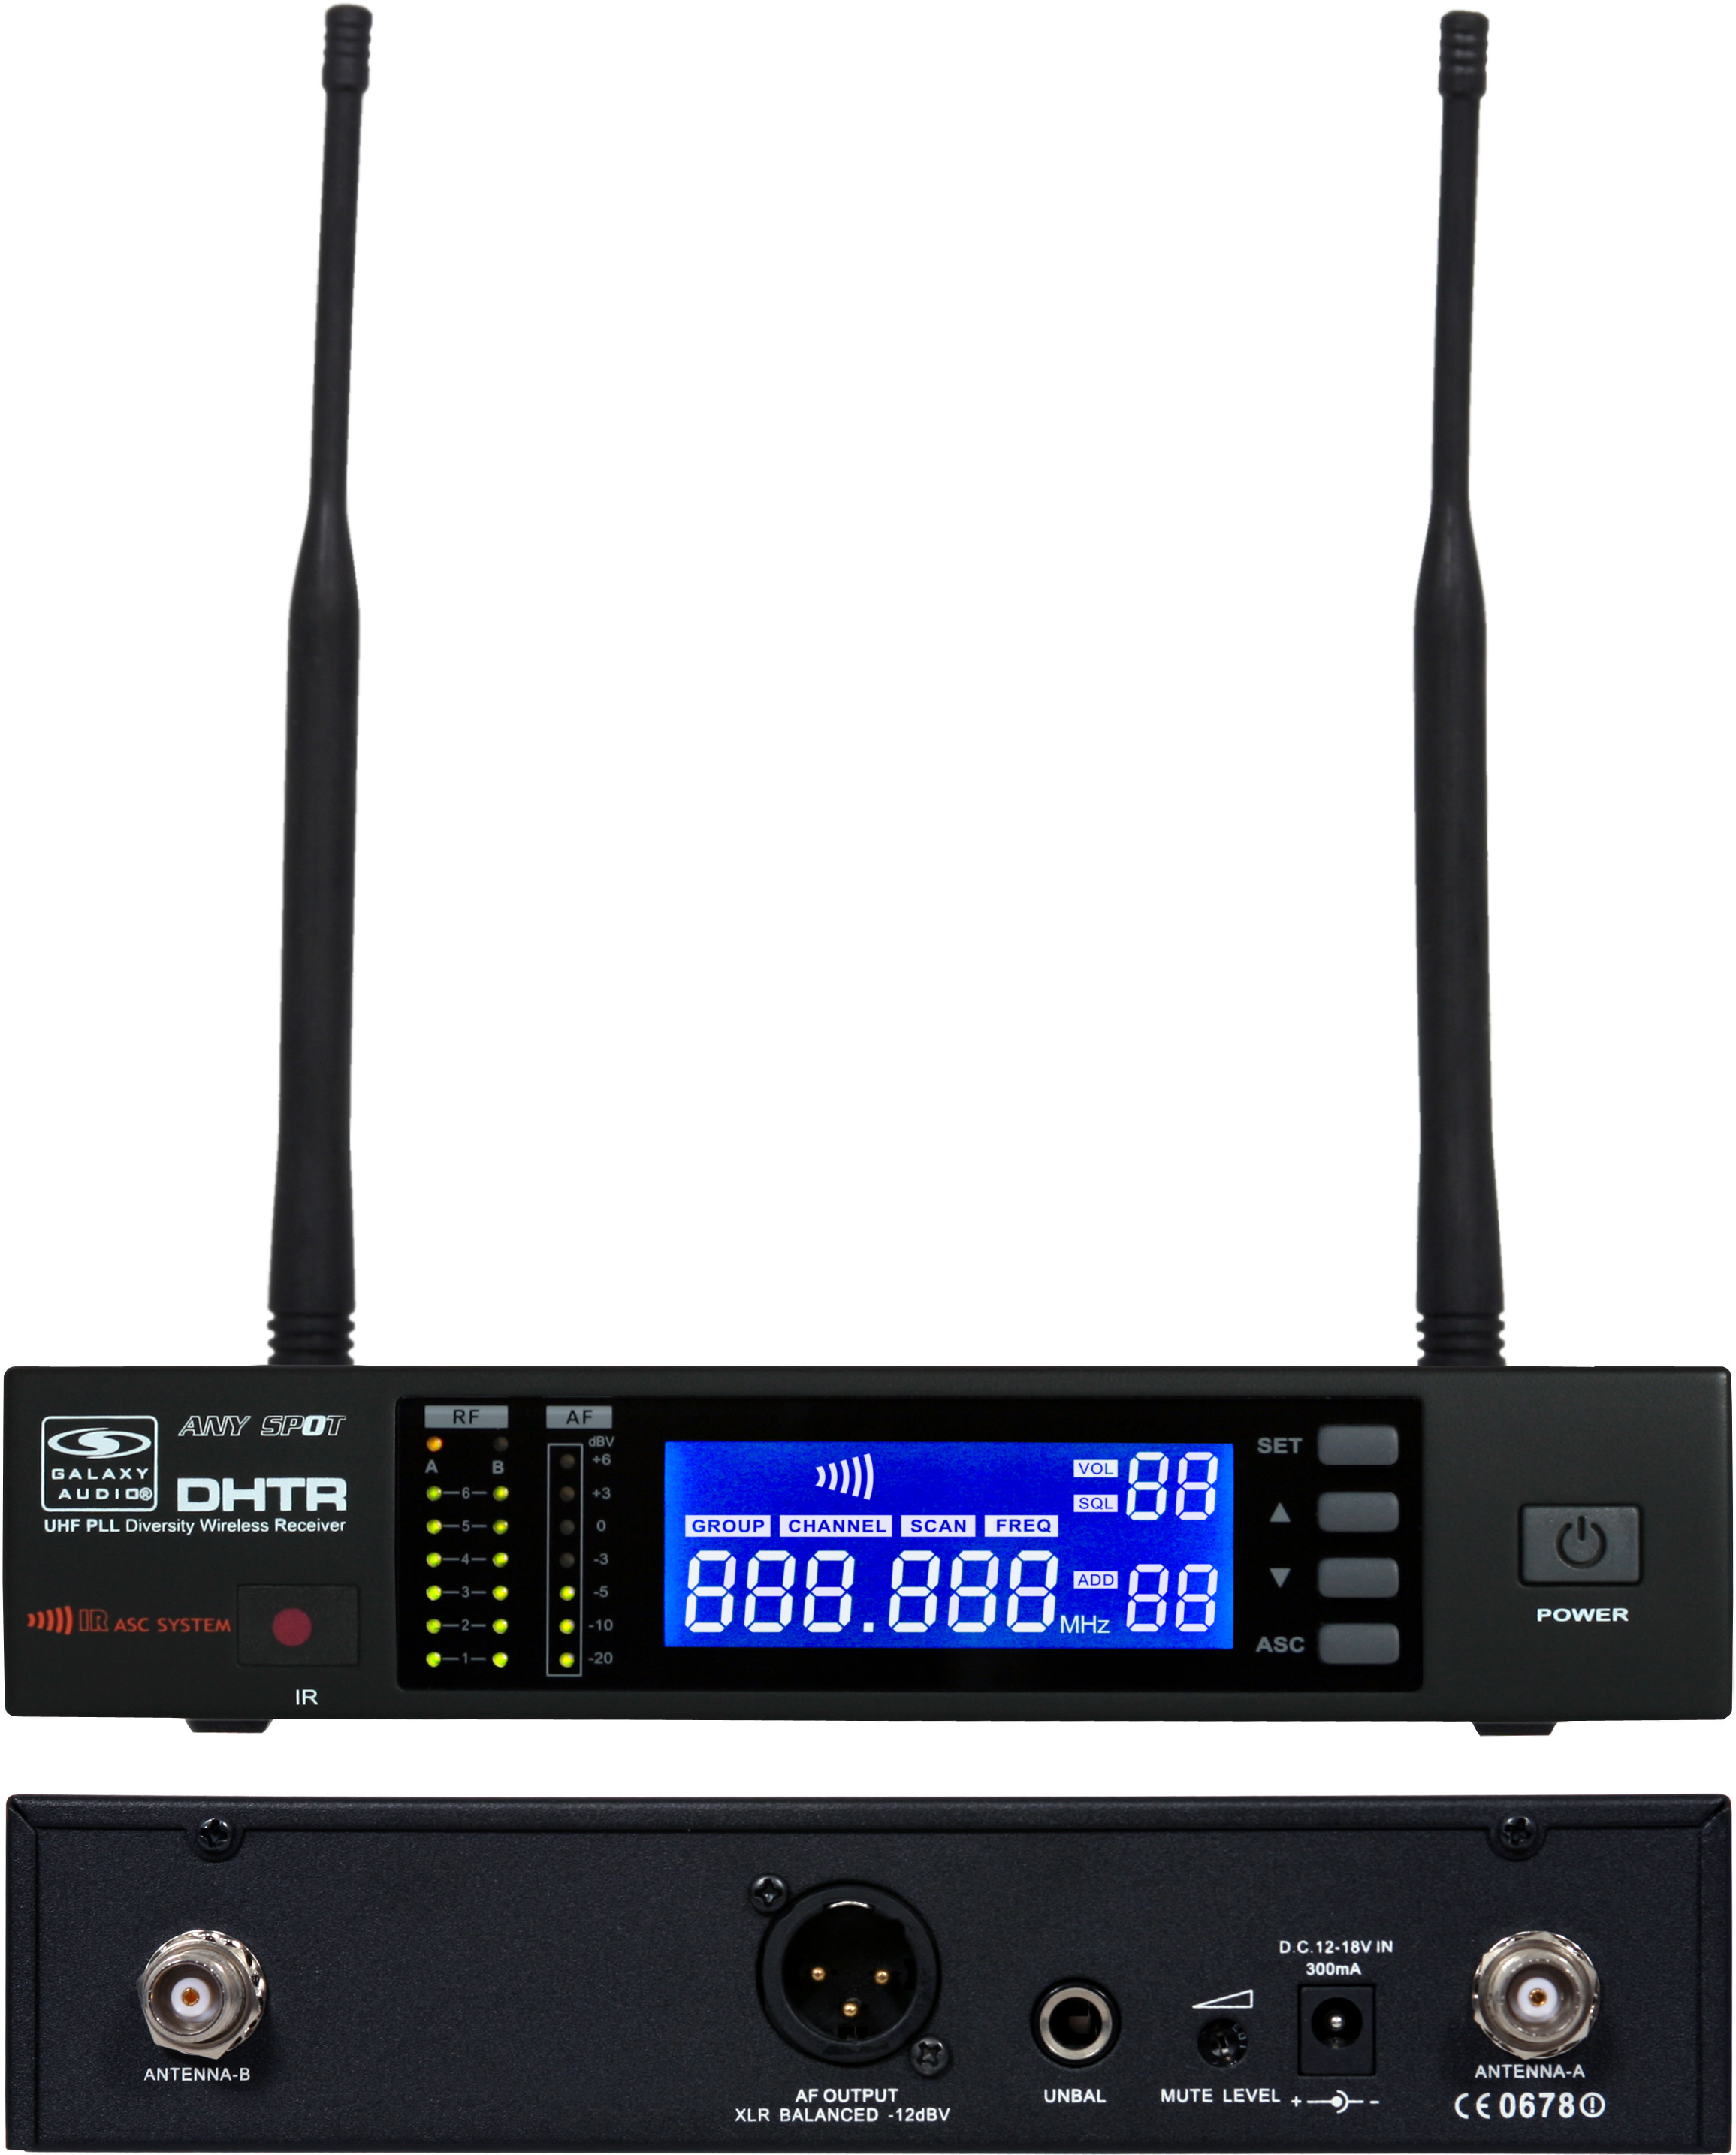 Galaxy Audio DHTR/76 Wireless Mic System w/ DHTR Receiver & MBP76 Transmitter